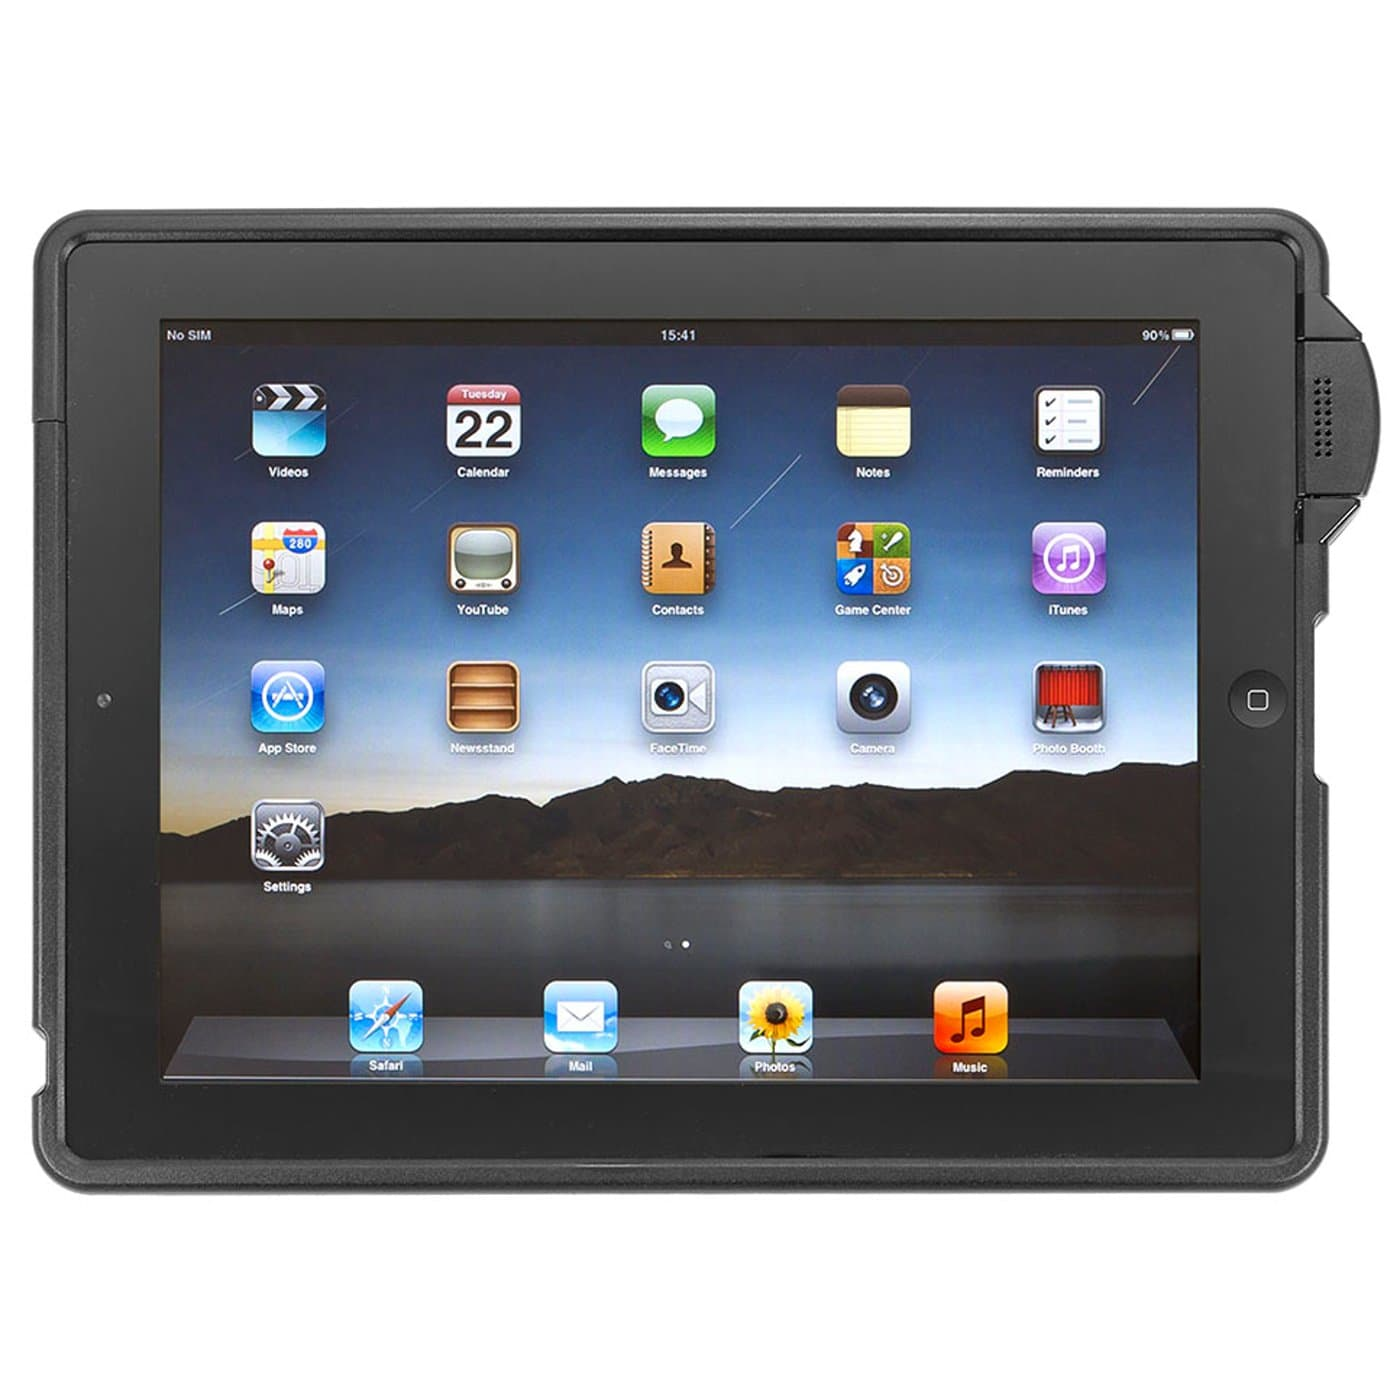 Ipad Security Lock : Kensington products security ipad enclosures